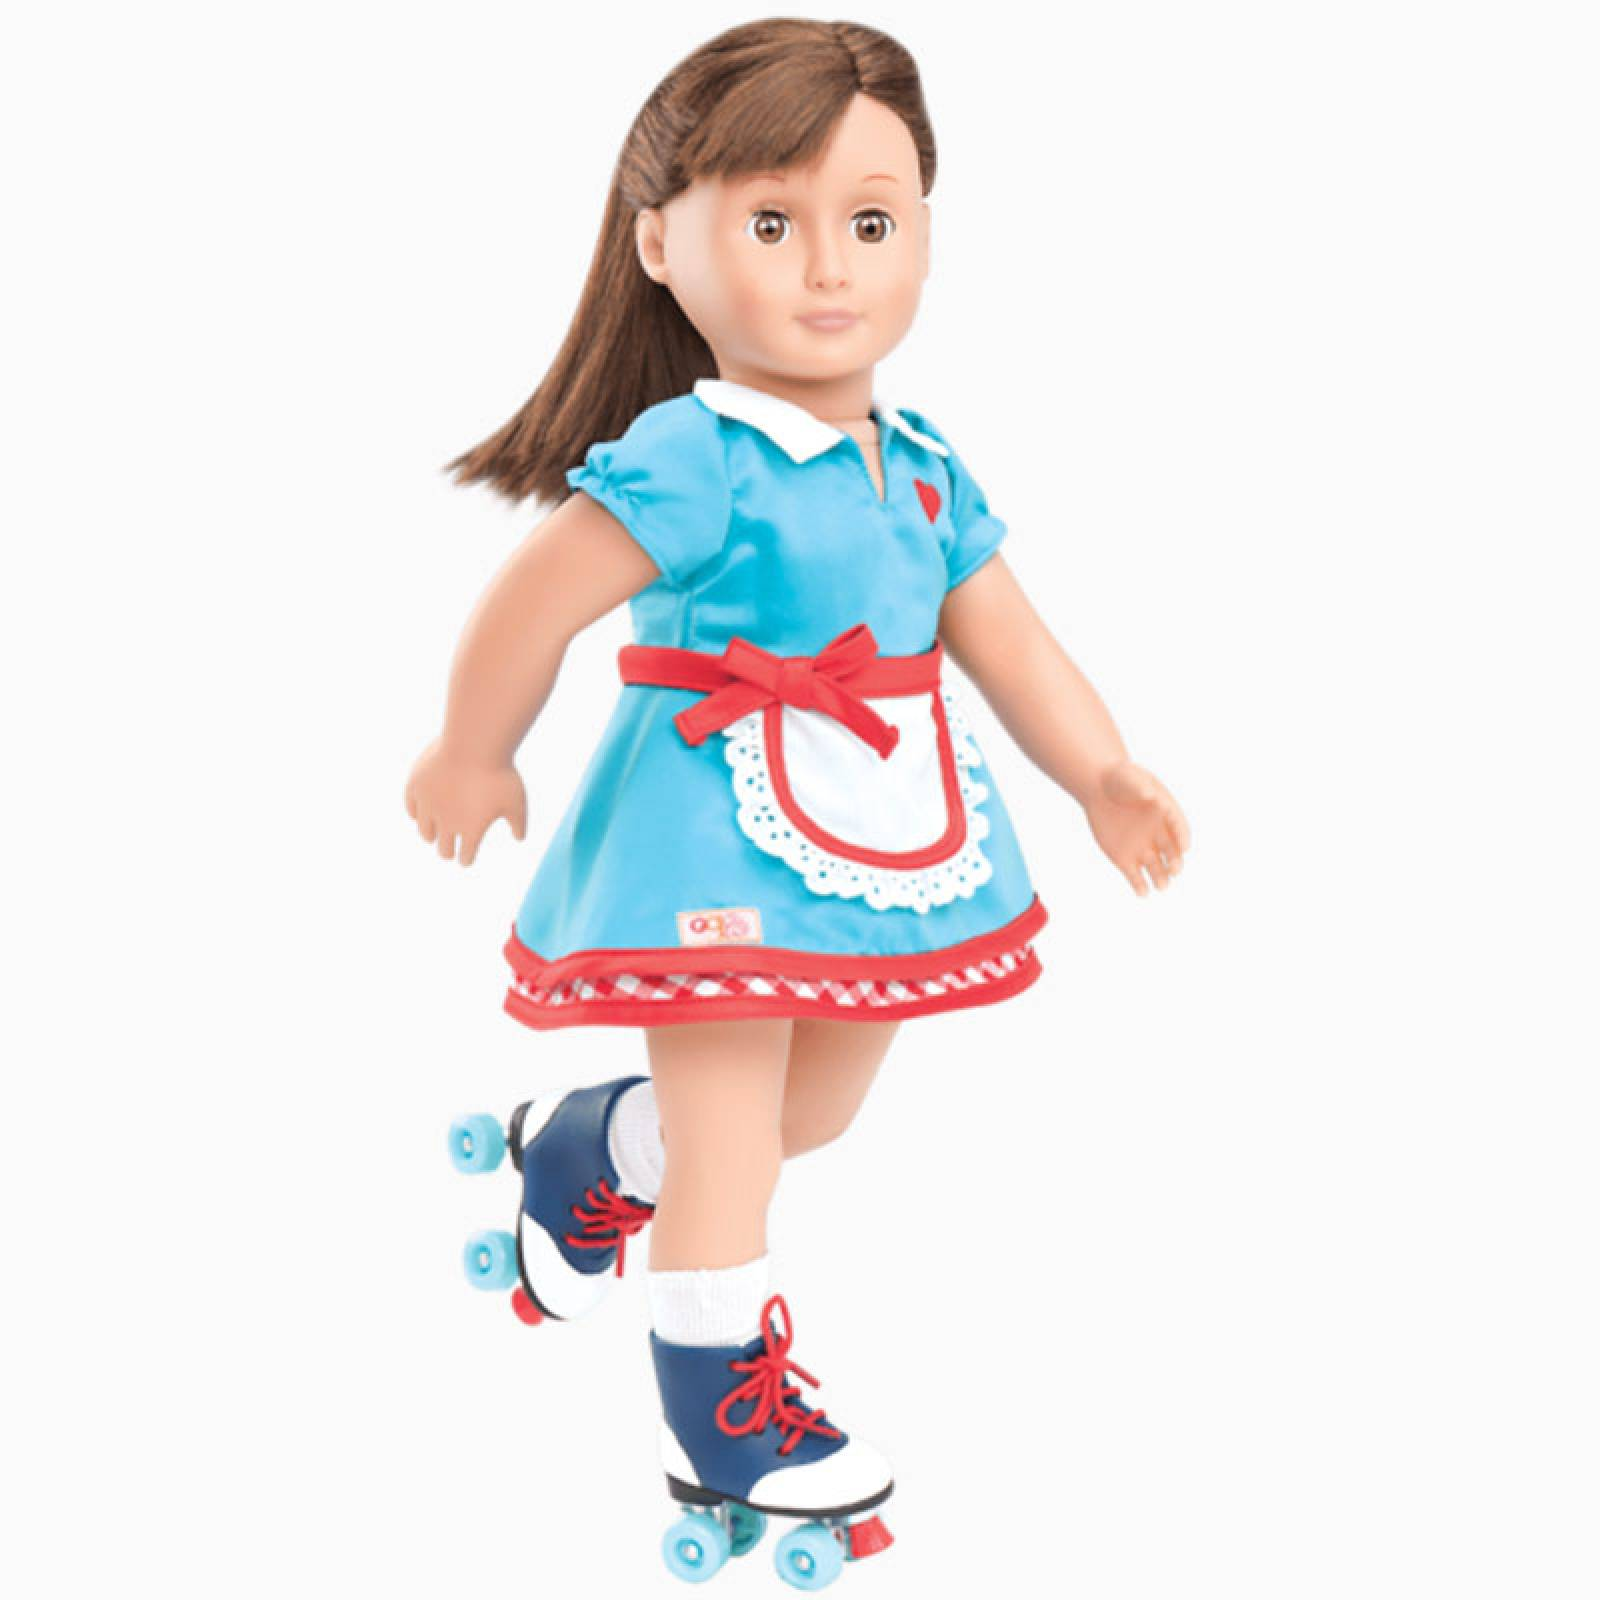 Soda Pop Sweetheart - Our Generation Doll Clothes Set 3+ thumbnails